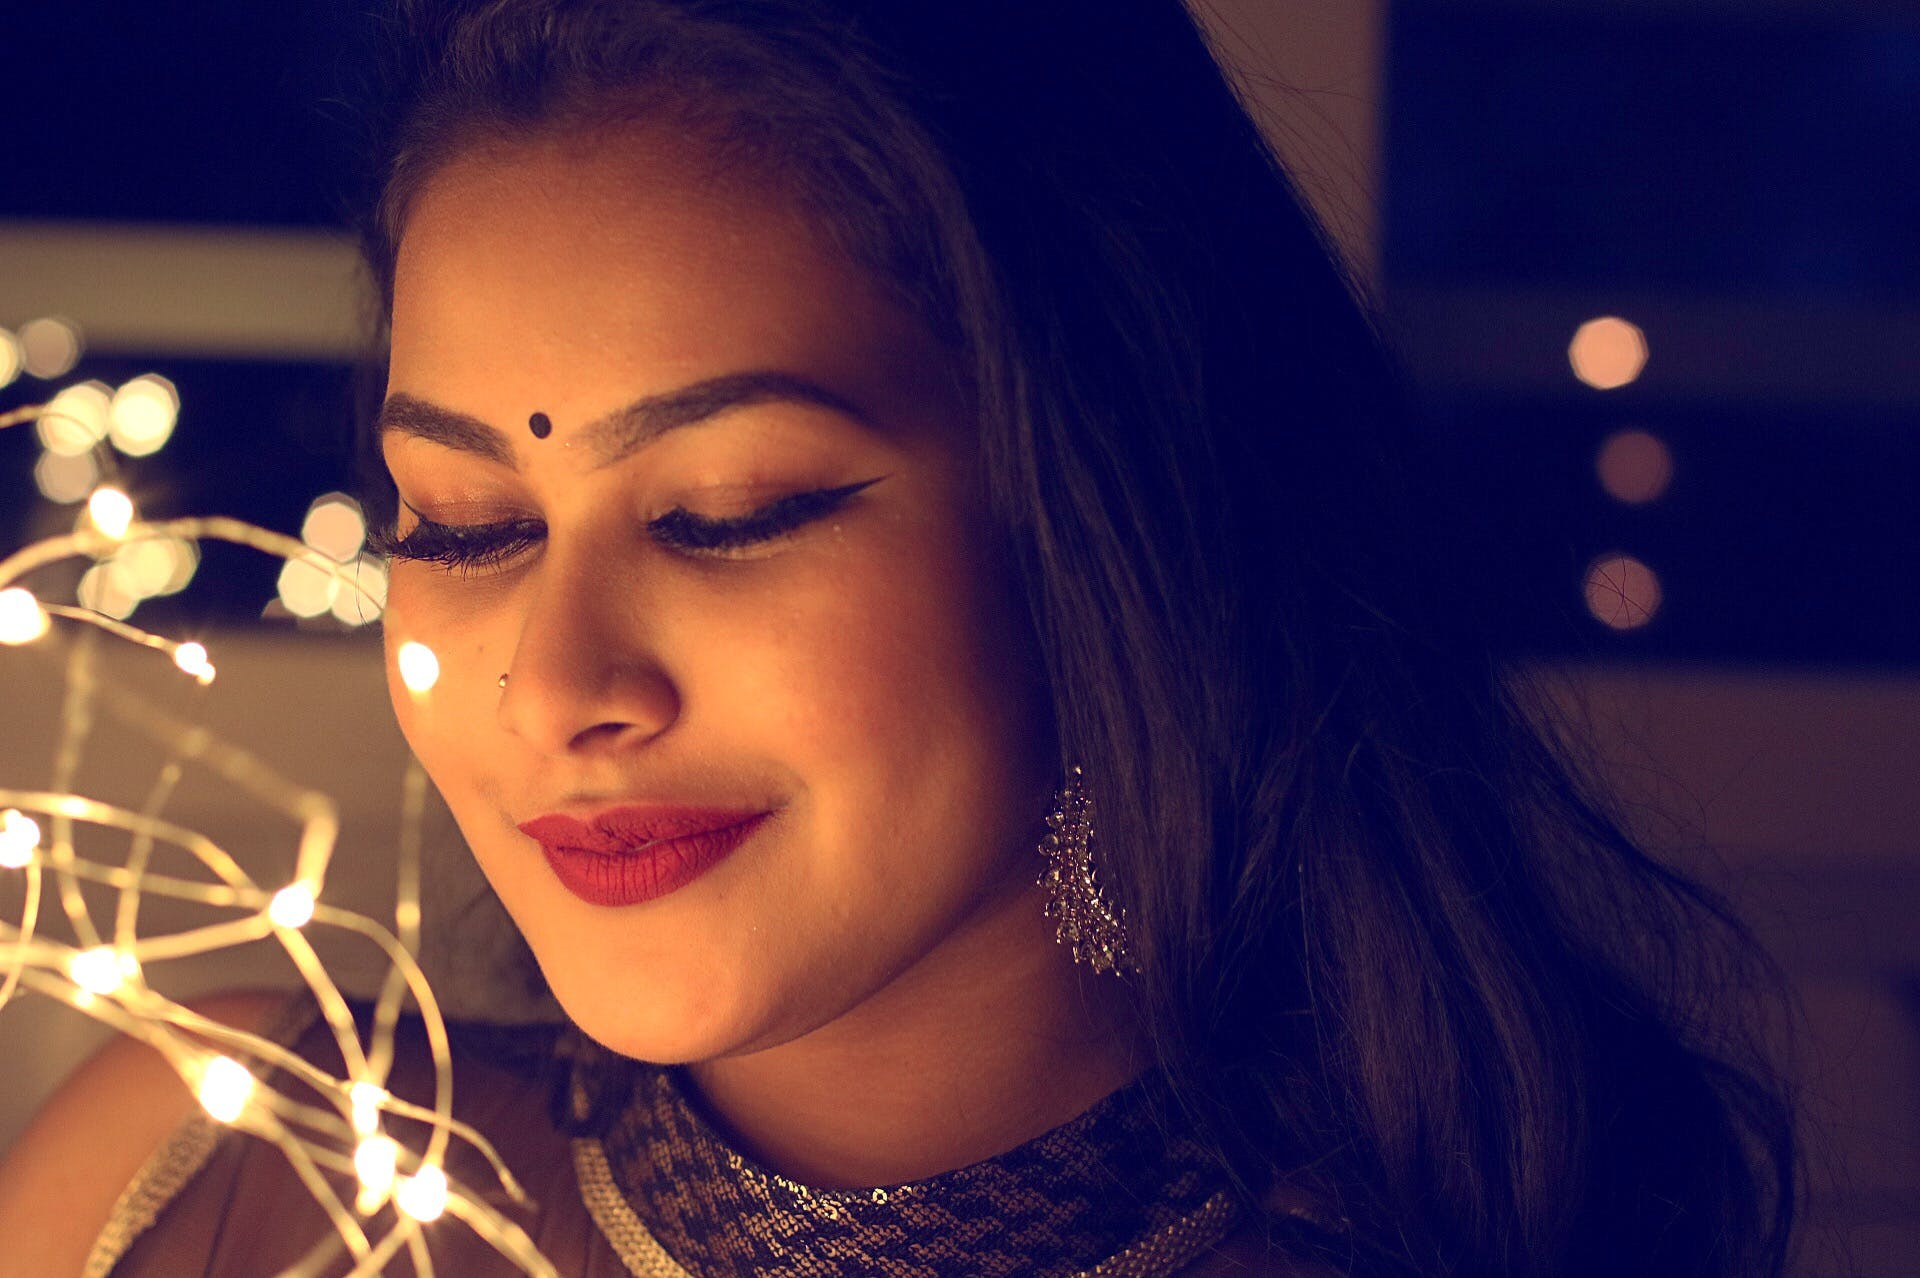 Woman With Red Lipstick And Black Bindi